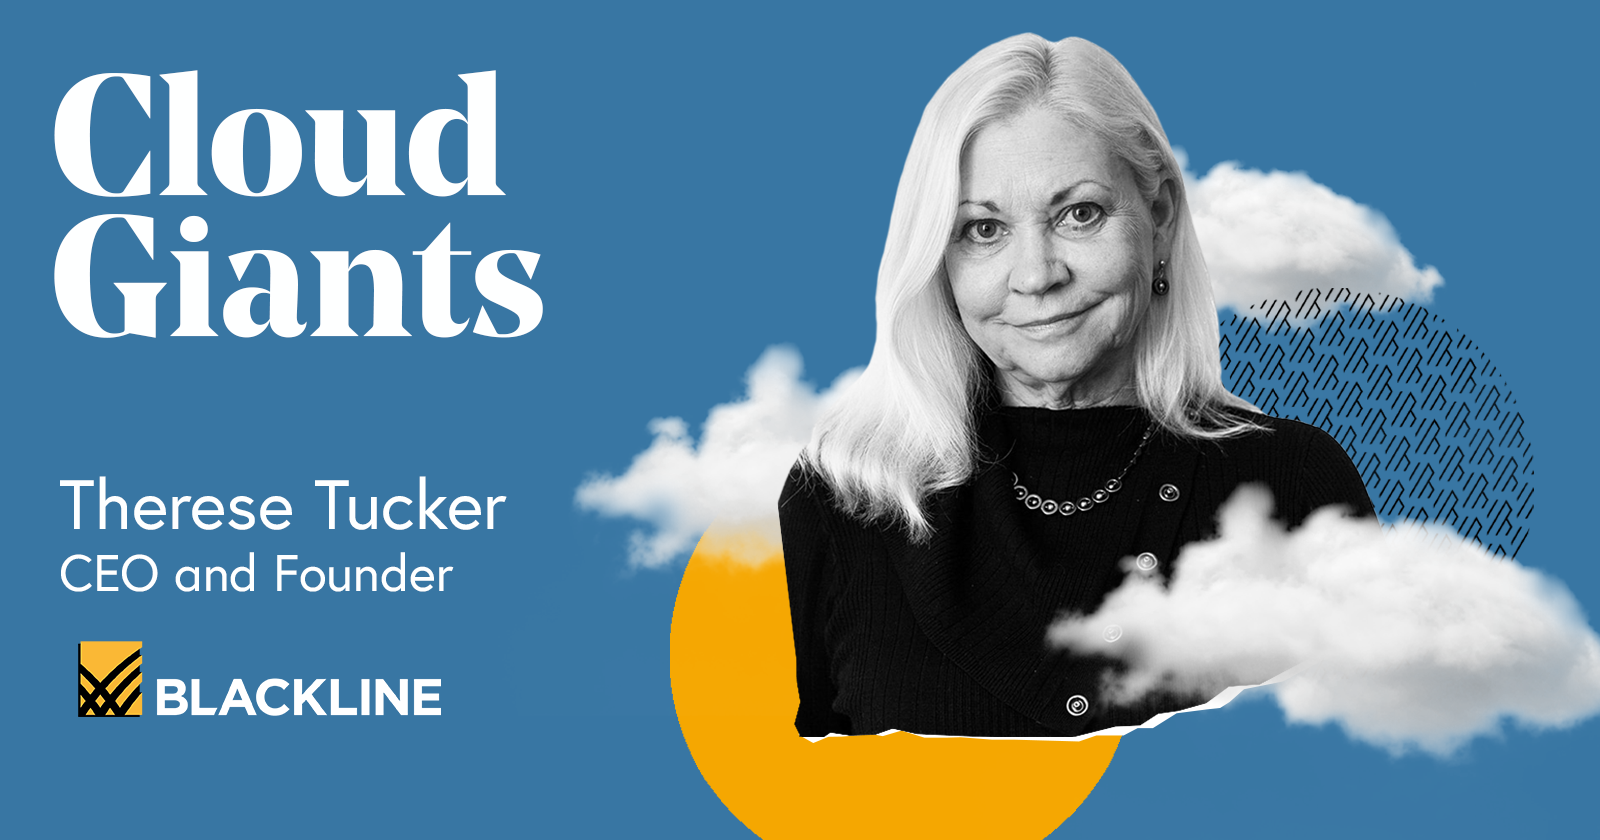 Therese Tucker, CEO of Blackline on Cloud Giants